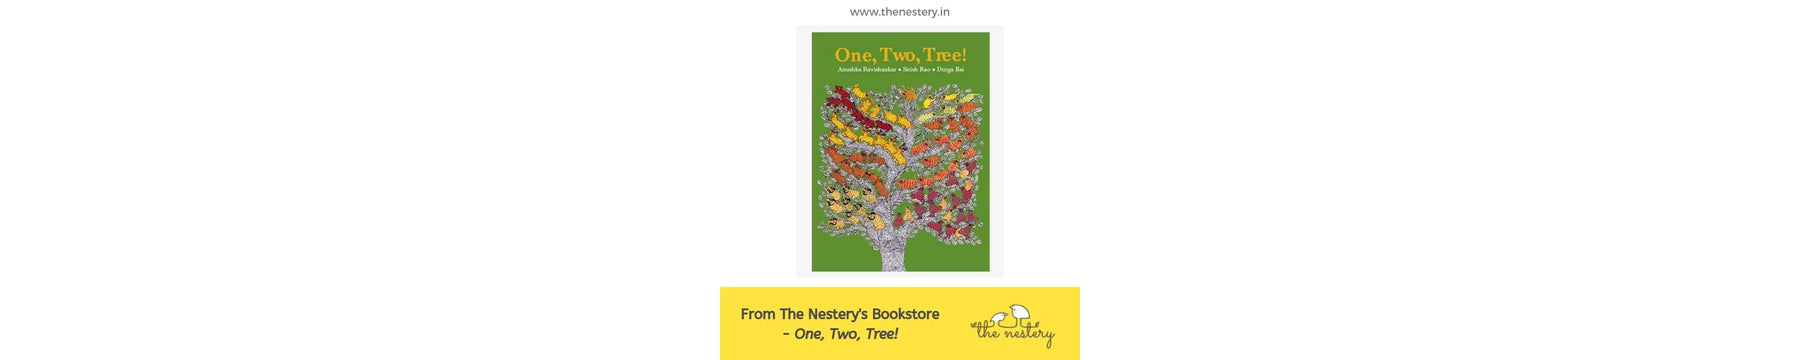 Book Review - One, Two, Tree!